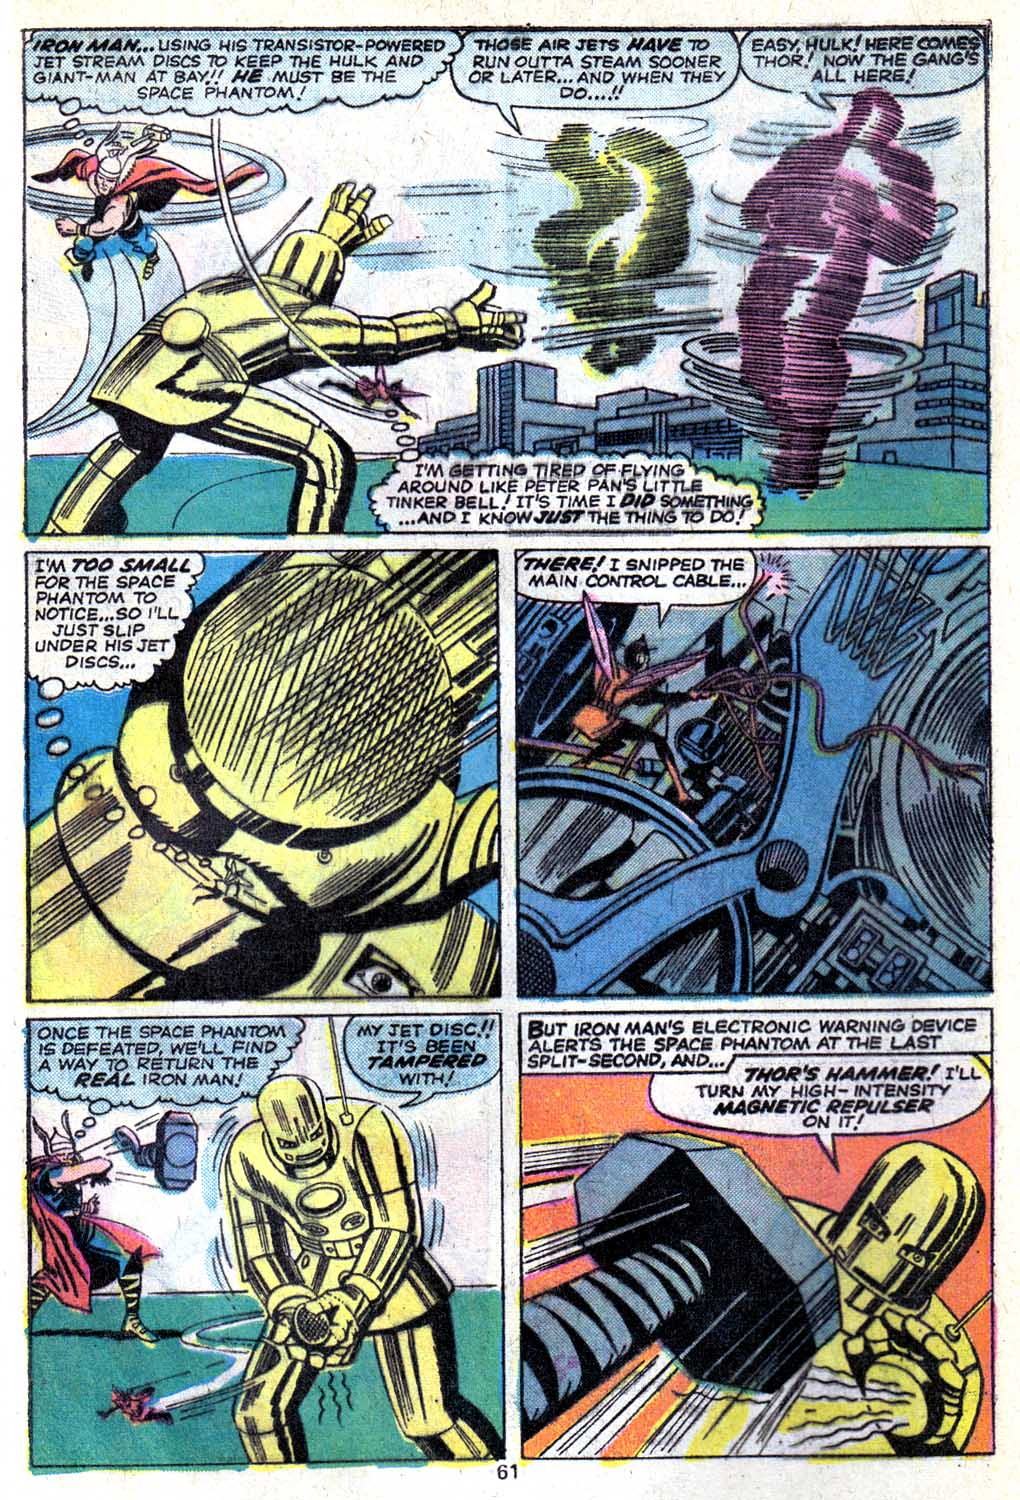 Giant-Size Avengers (1974) issue 3 - Page 63